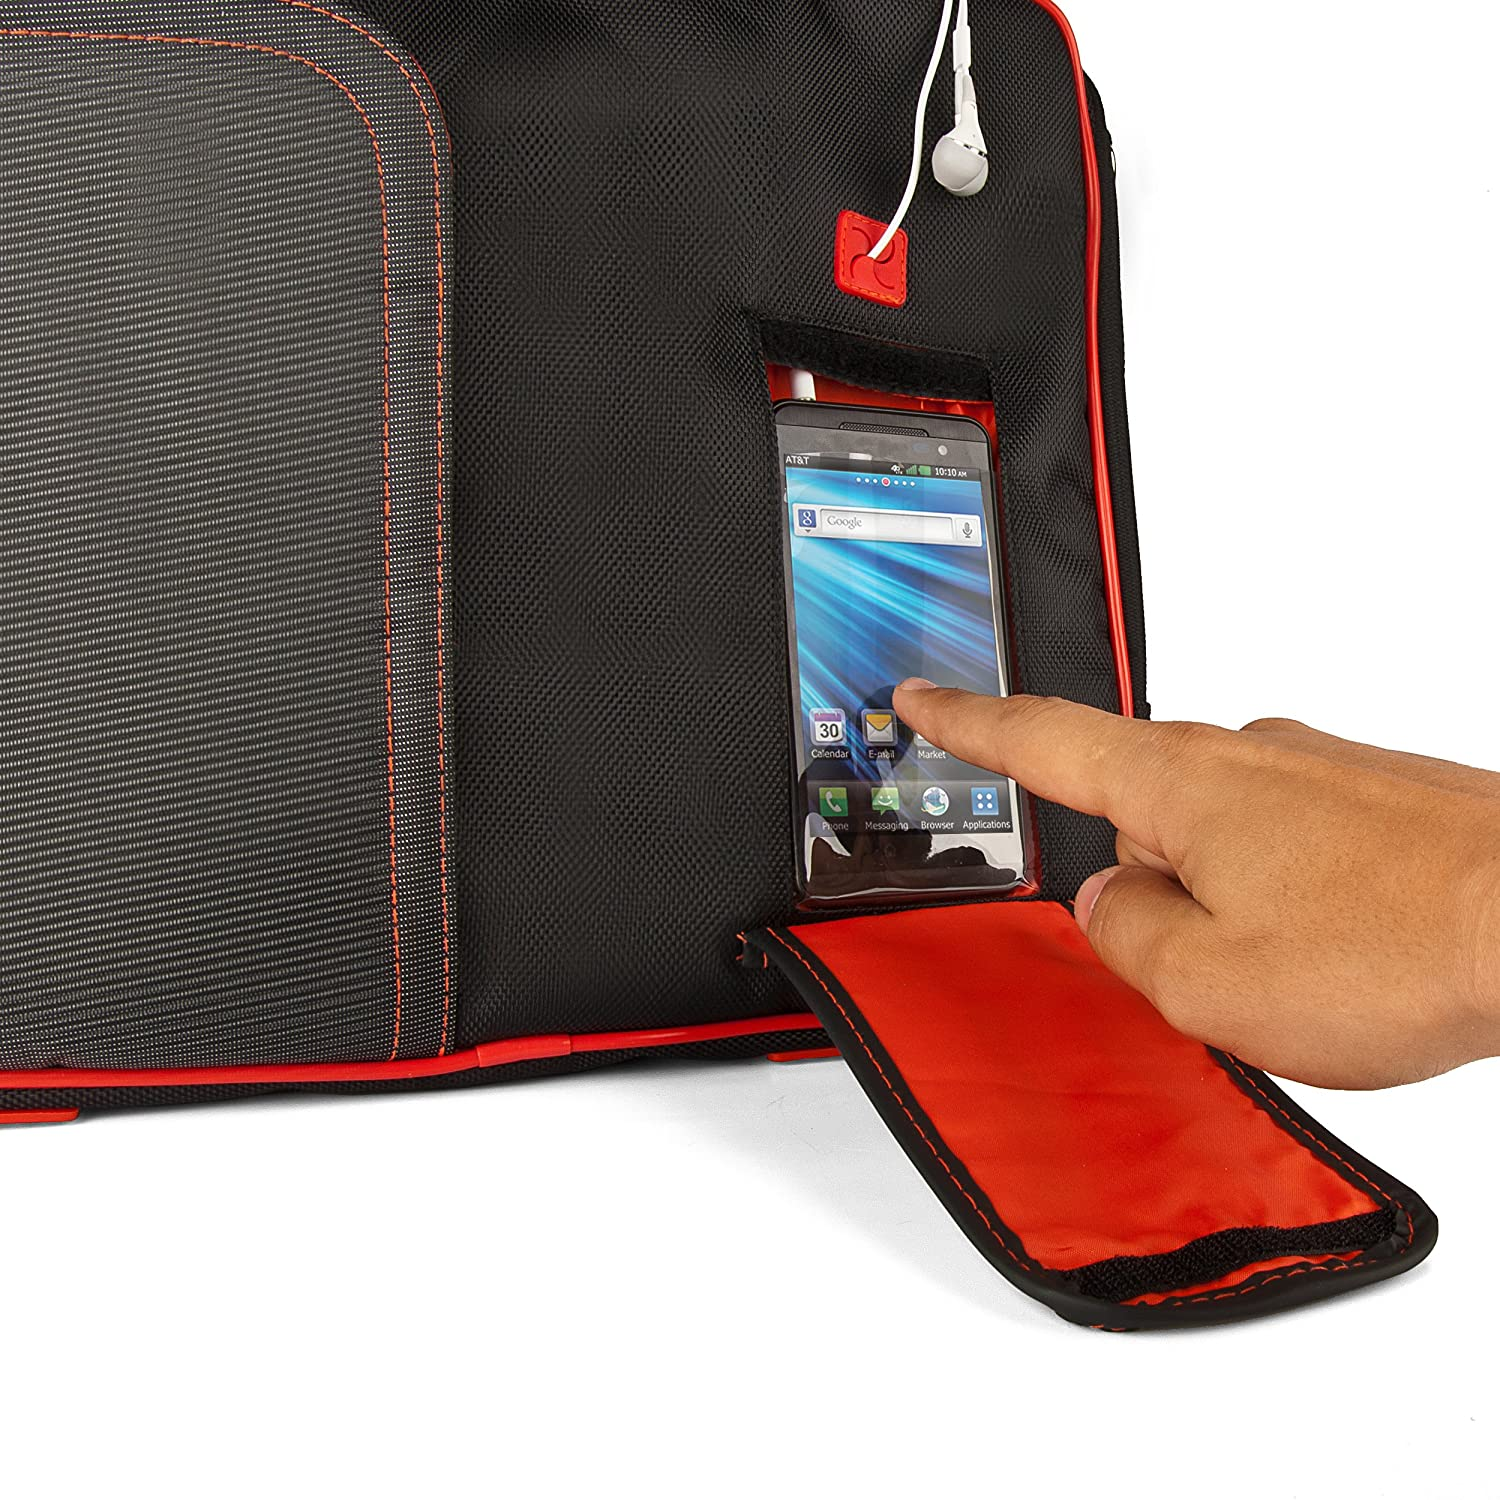 Red VanGoddy Pindar Messenger Carrying Bag for Azend Group Corp Envizen 10.1 Android /& Windows Tablets